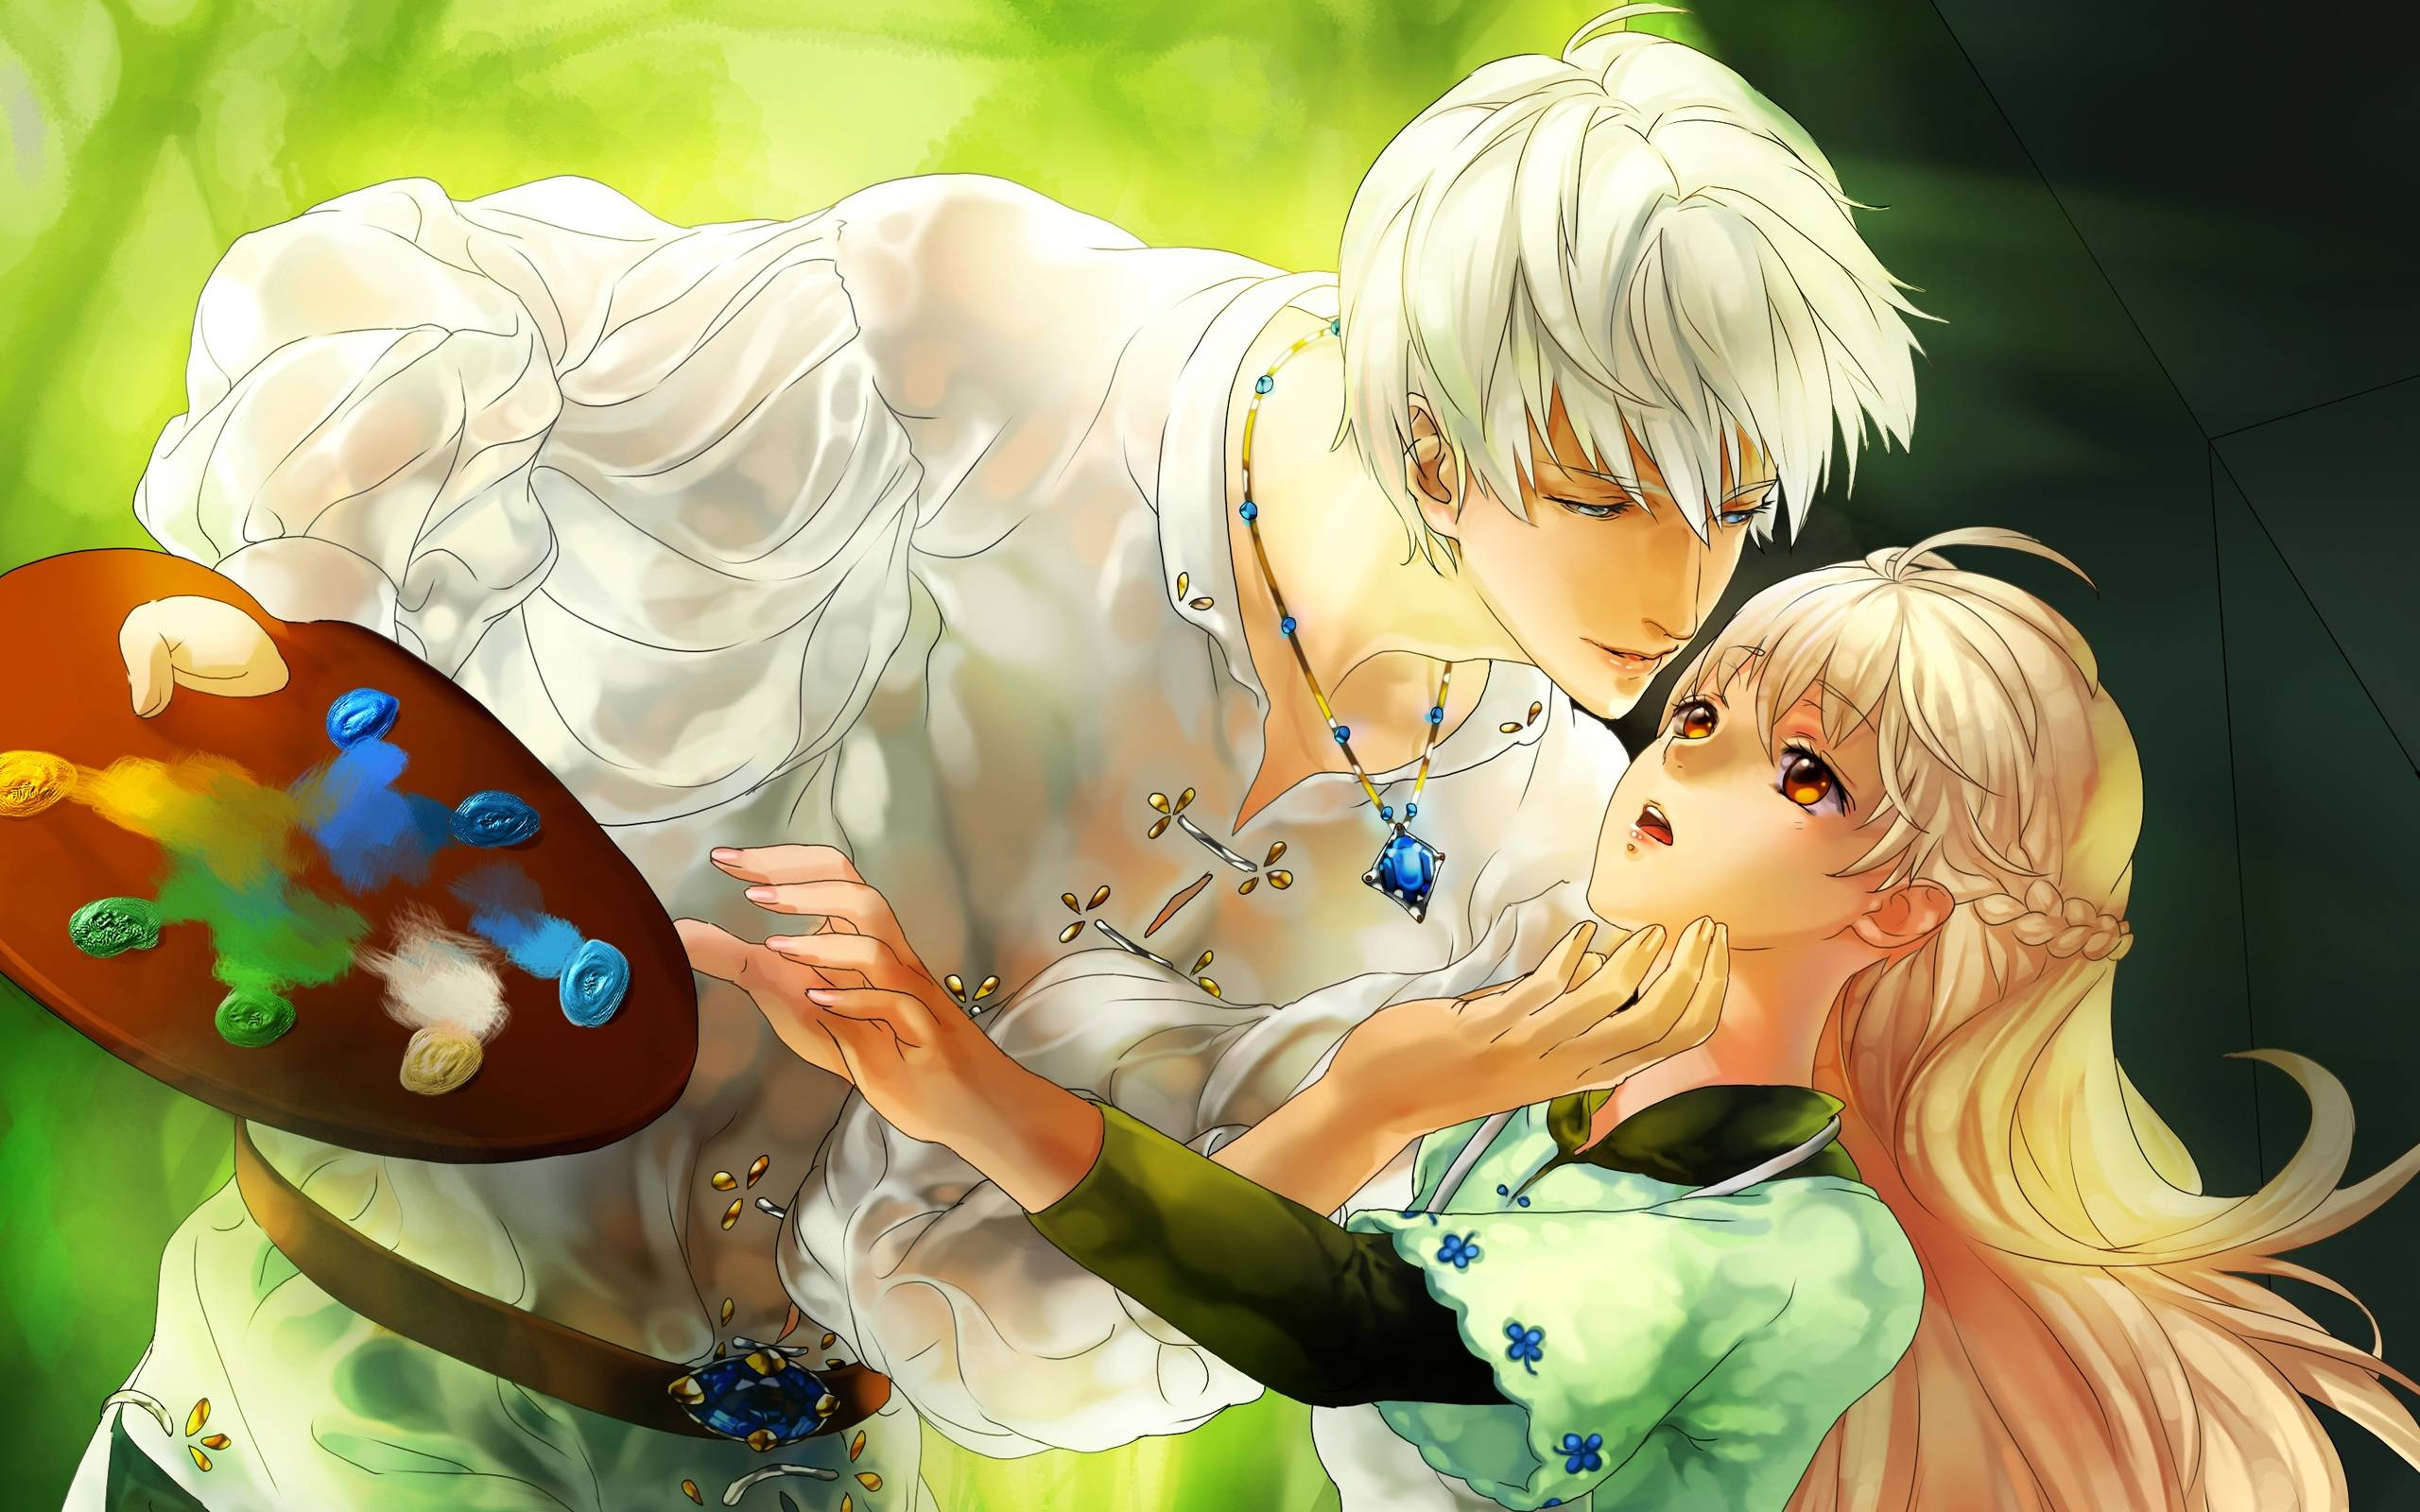 Love couple Wallpaper Animated : Romantic Anime Wallpapers - WallpaperSafari